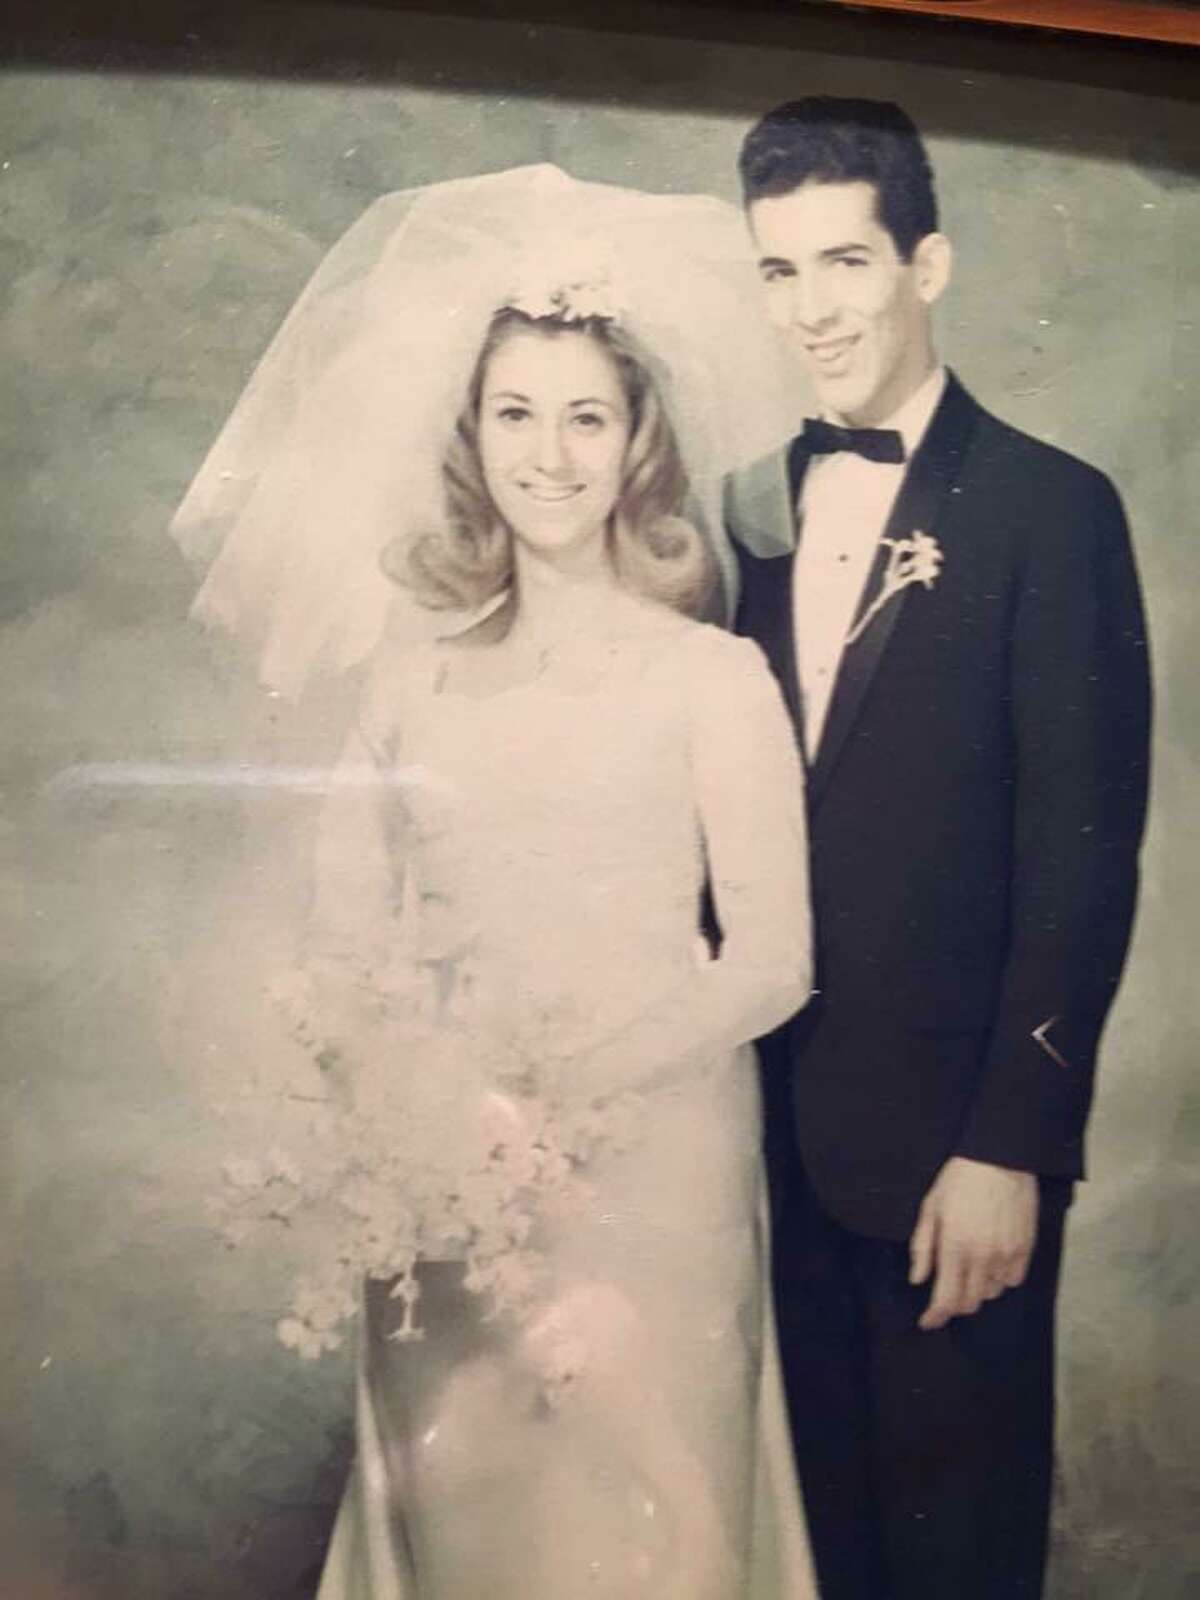 Richard Granelli and Sandra Garaffa were married Jan. 7, 1967 at Sacred Heart Church.